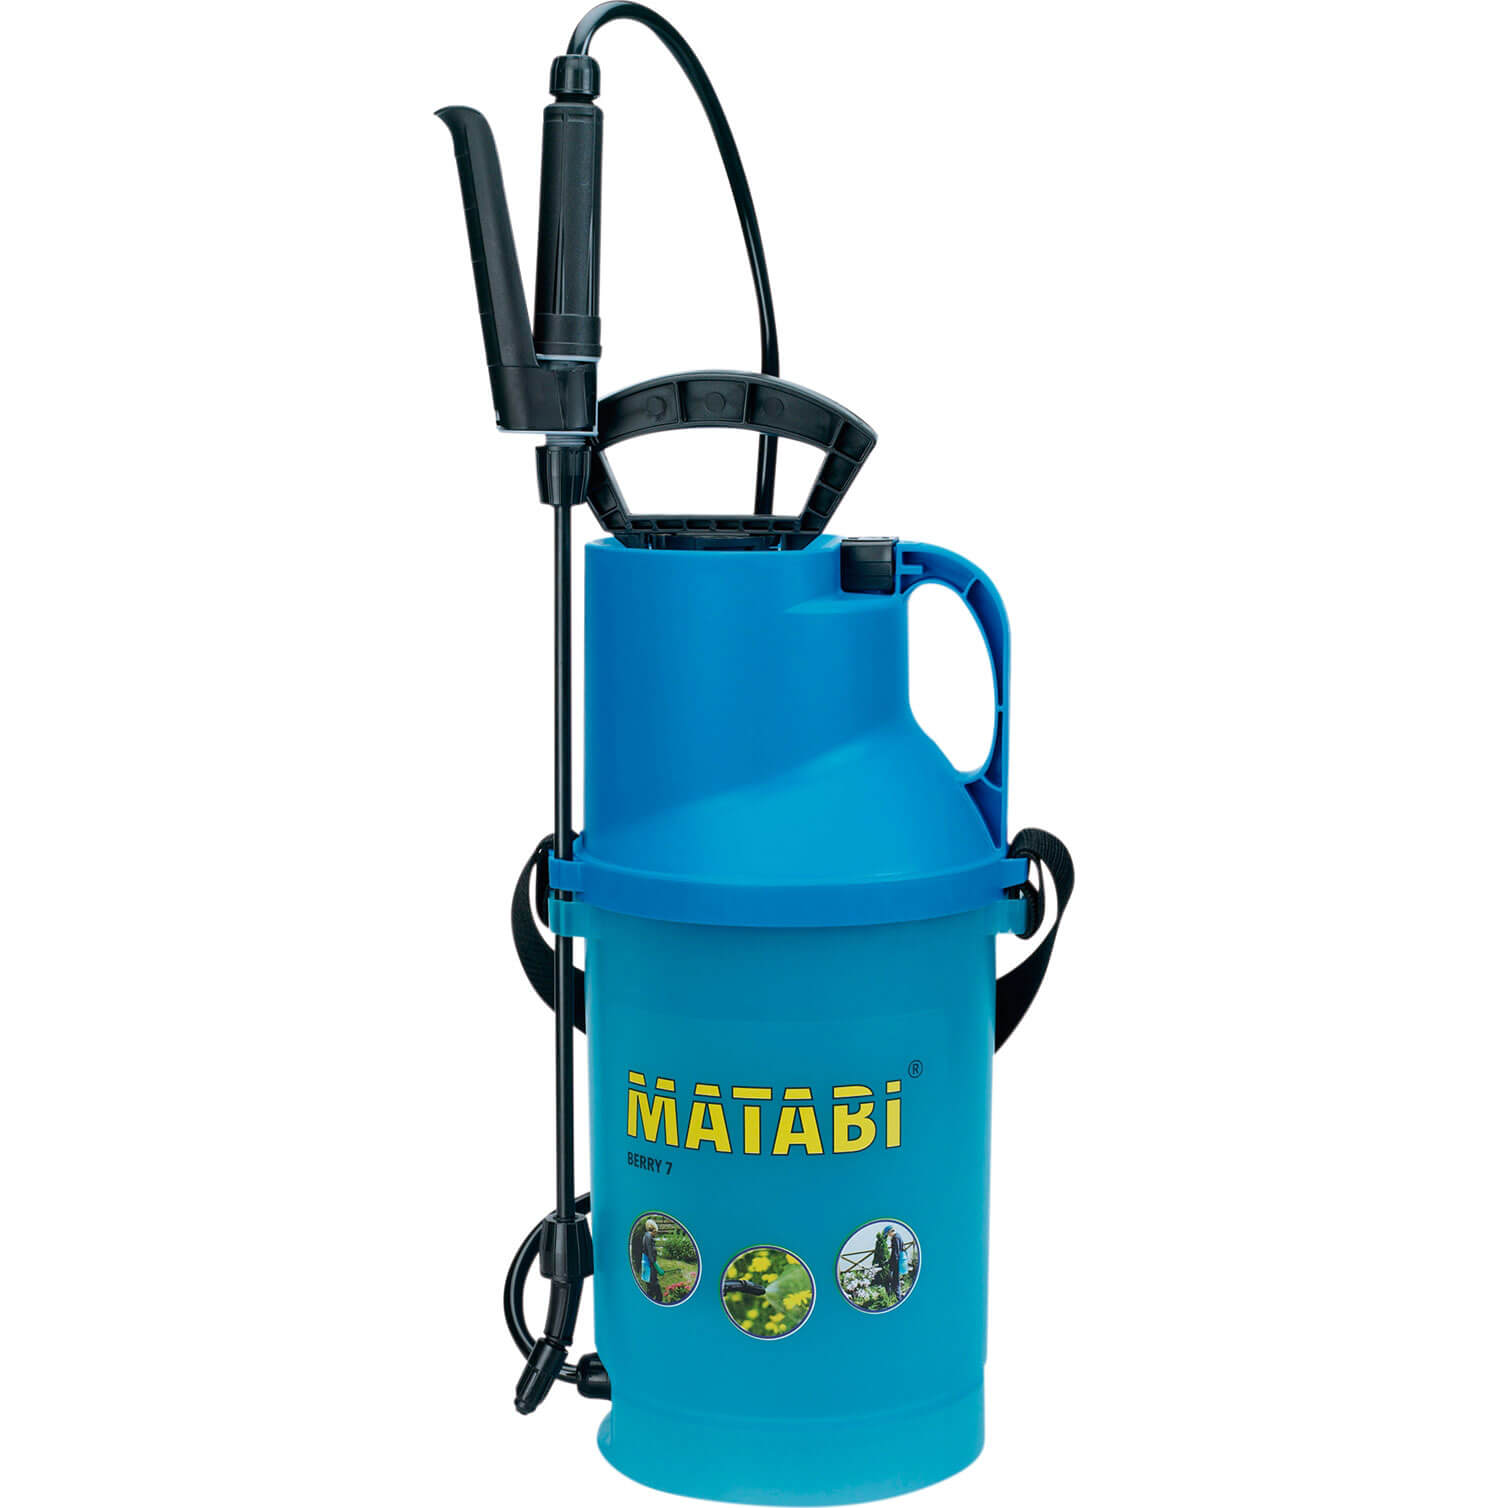 Image of Matabi Berry 7 Pressure Water Sprayer 7l